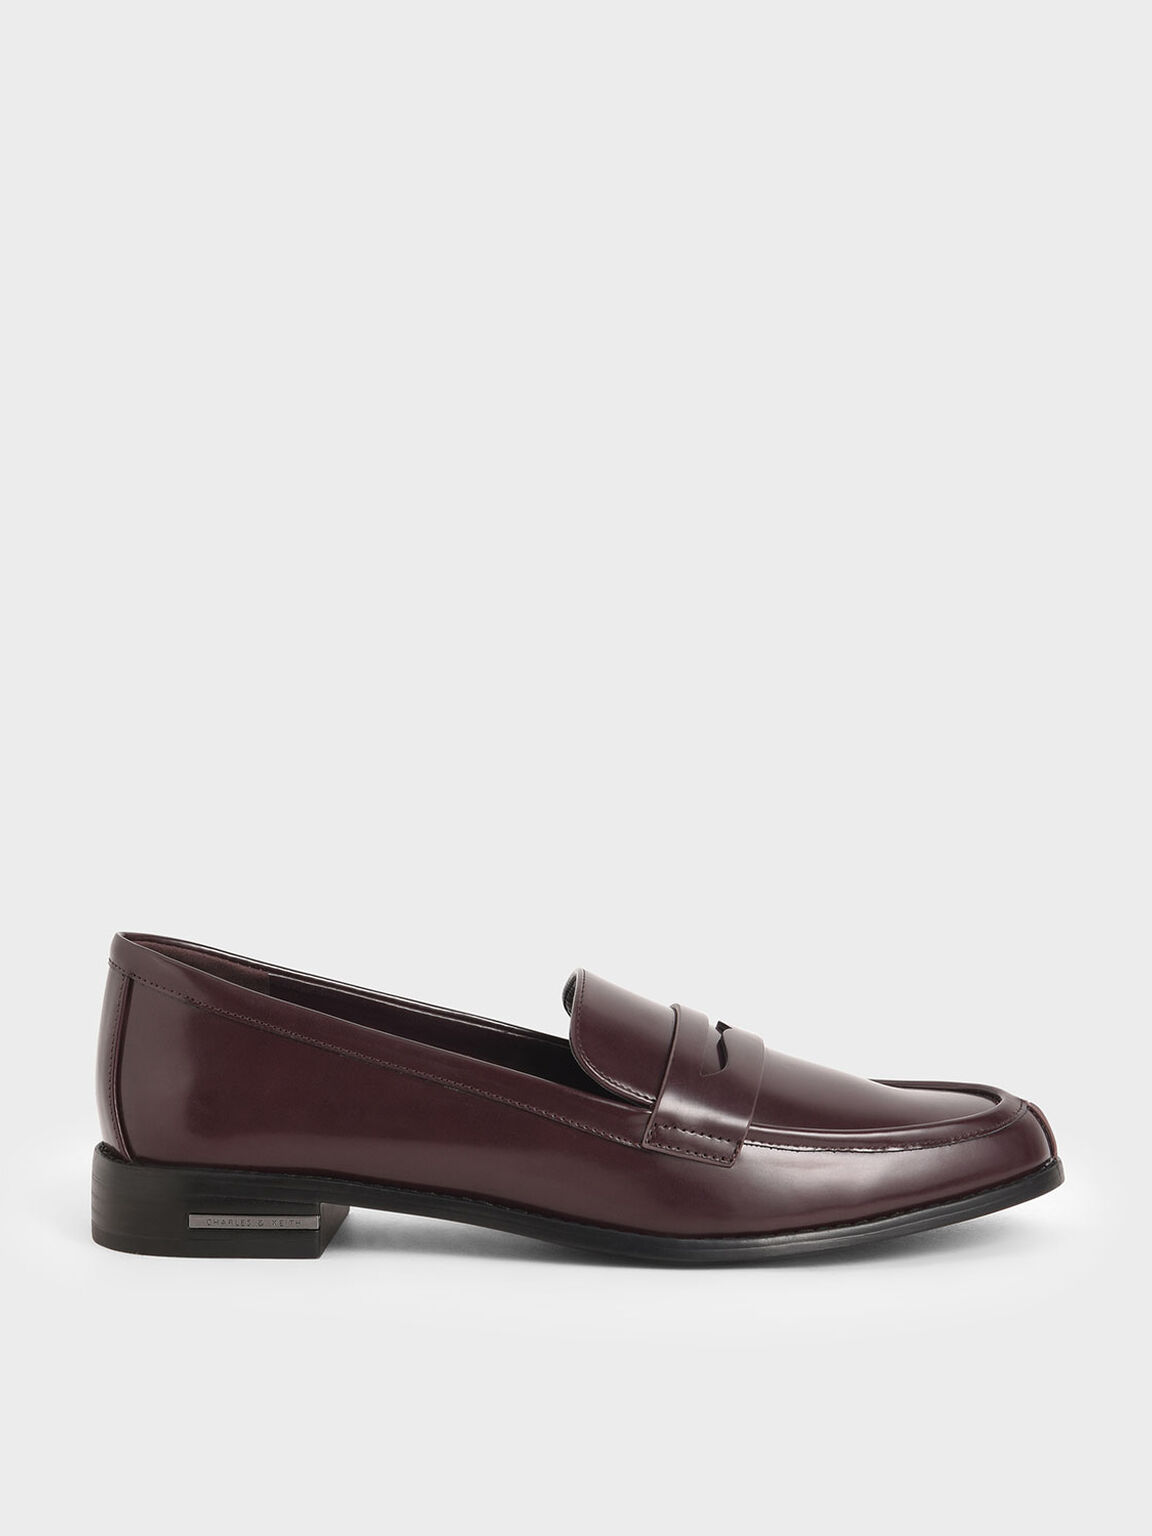 Penny Loafers, Maroon, hi-res